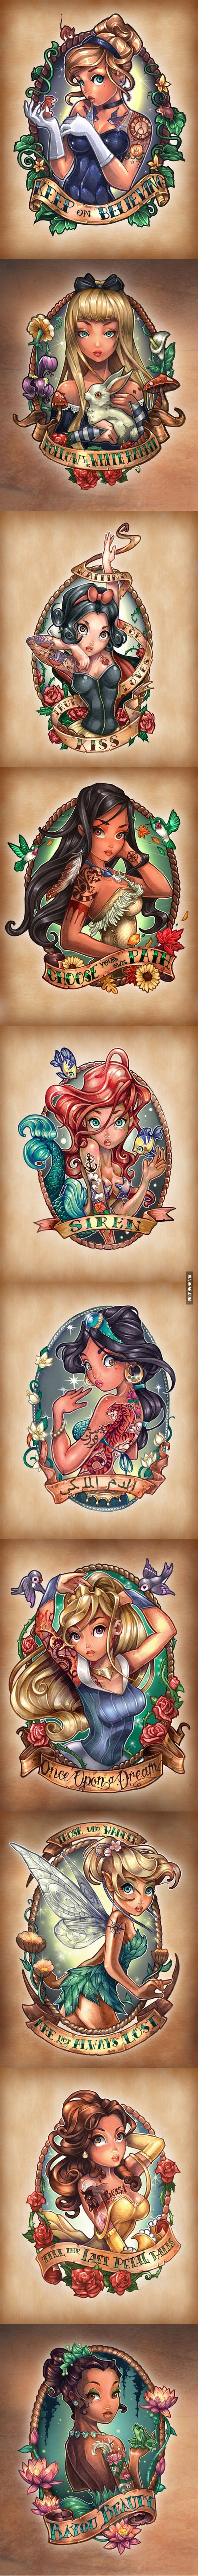 Princesas Disney com Tattoo